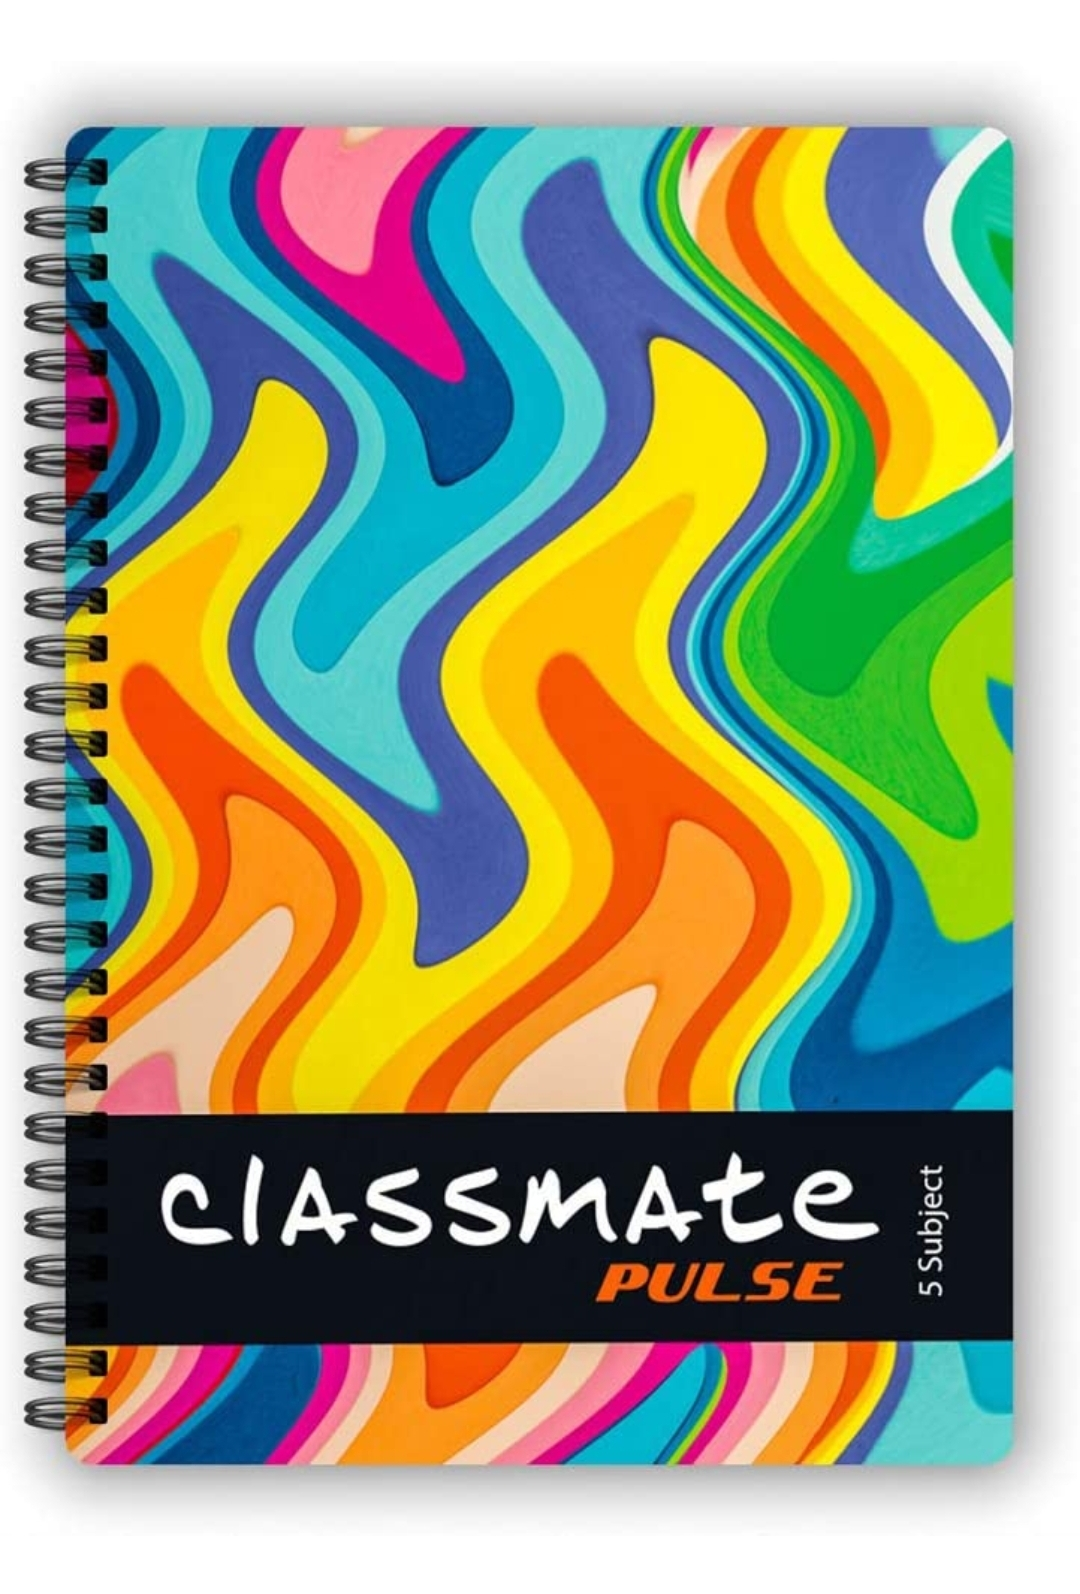 Classmate Pulse Notebook Soft Cover 5 Subject Spiral Binding Notebook Single Line 29.7 X 21 cm 250 Pages Pack of 1